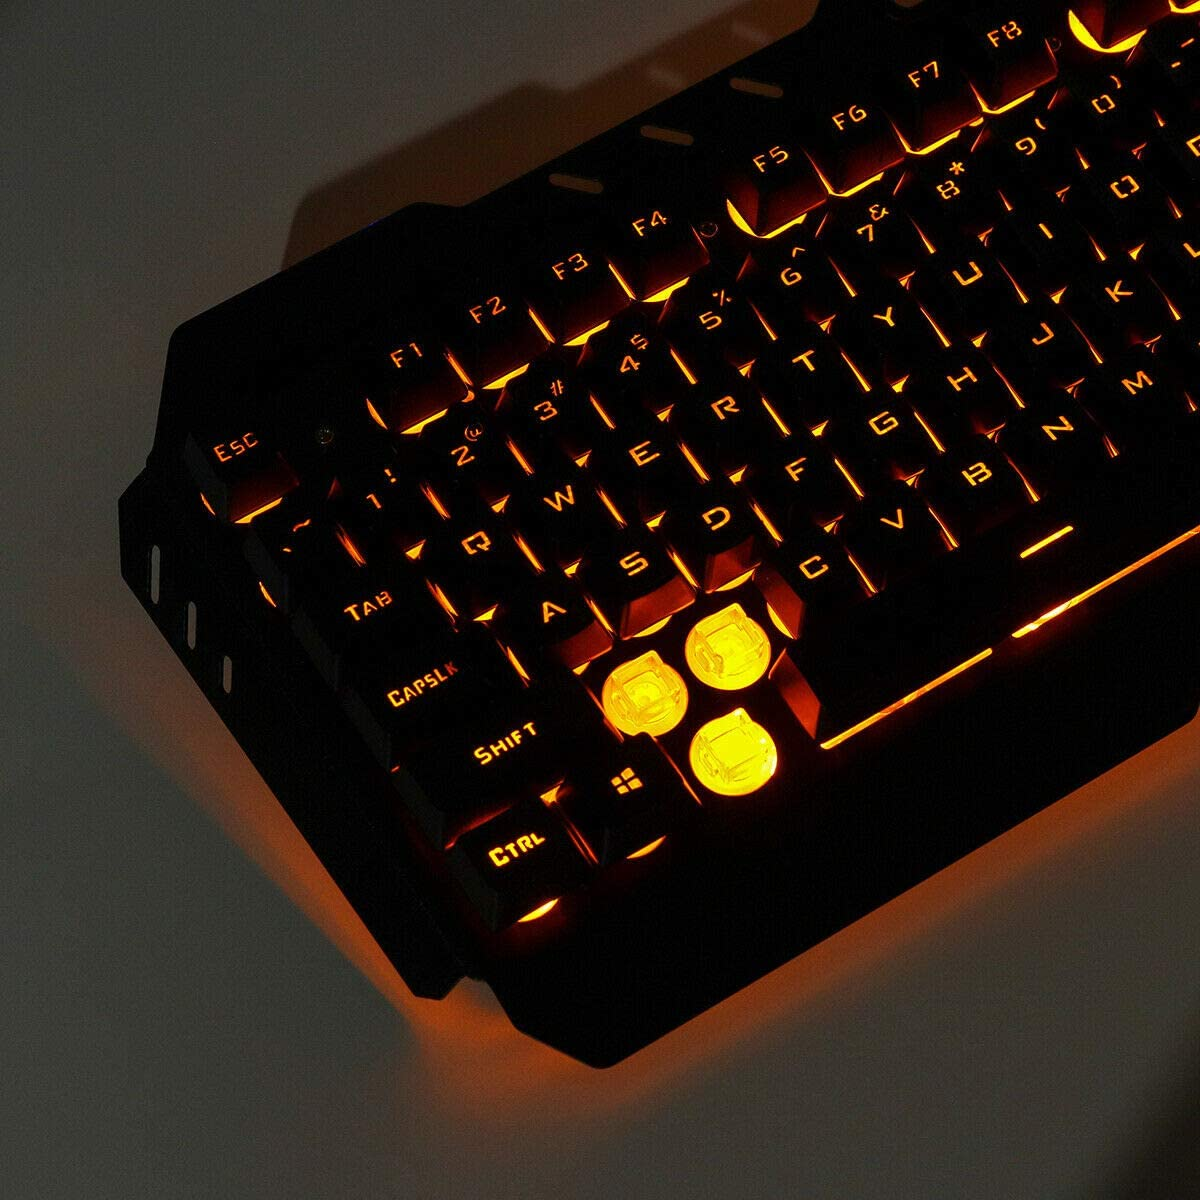 Redcolourful Computer Desktop Gaming Keyboard and Mouse Mechanical Feel LED Light Backlit As Shown